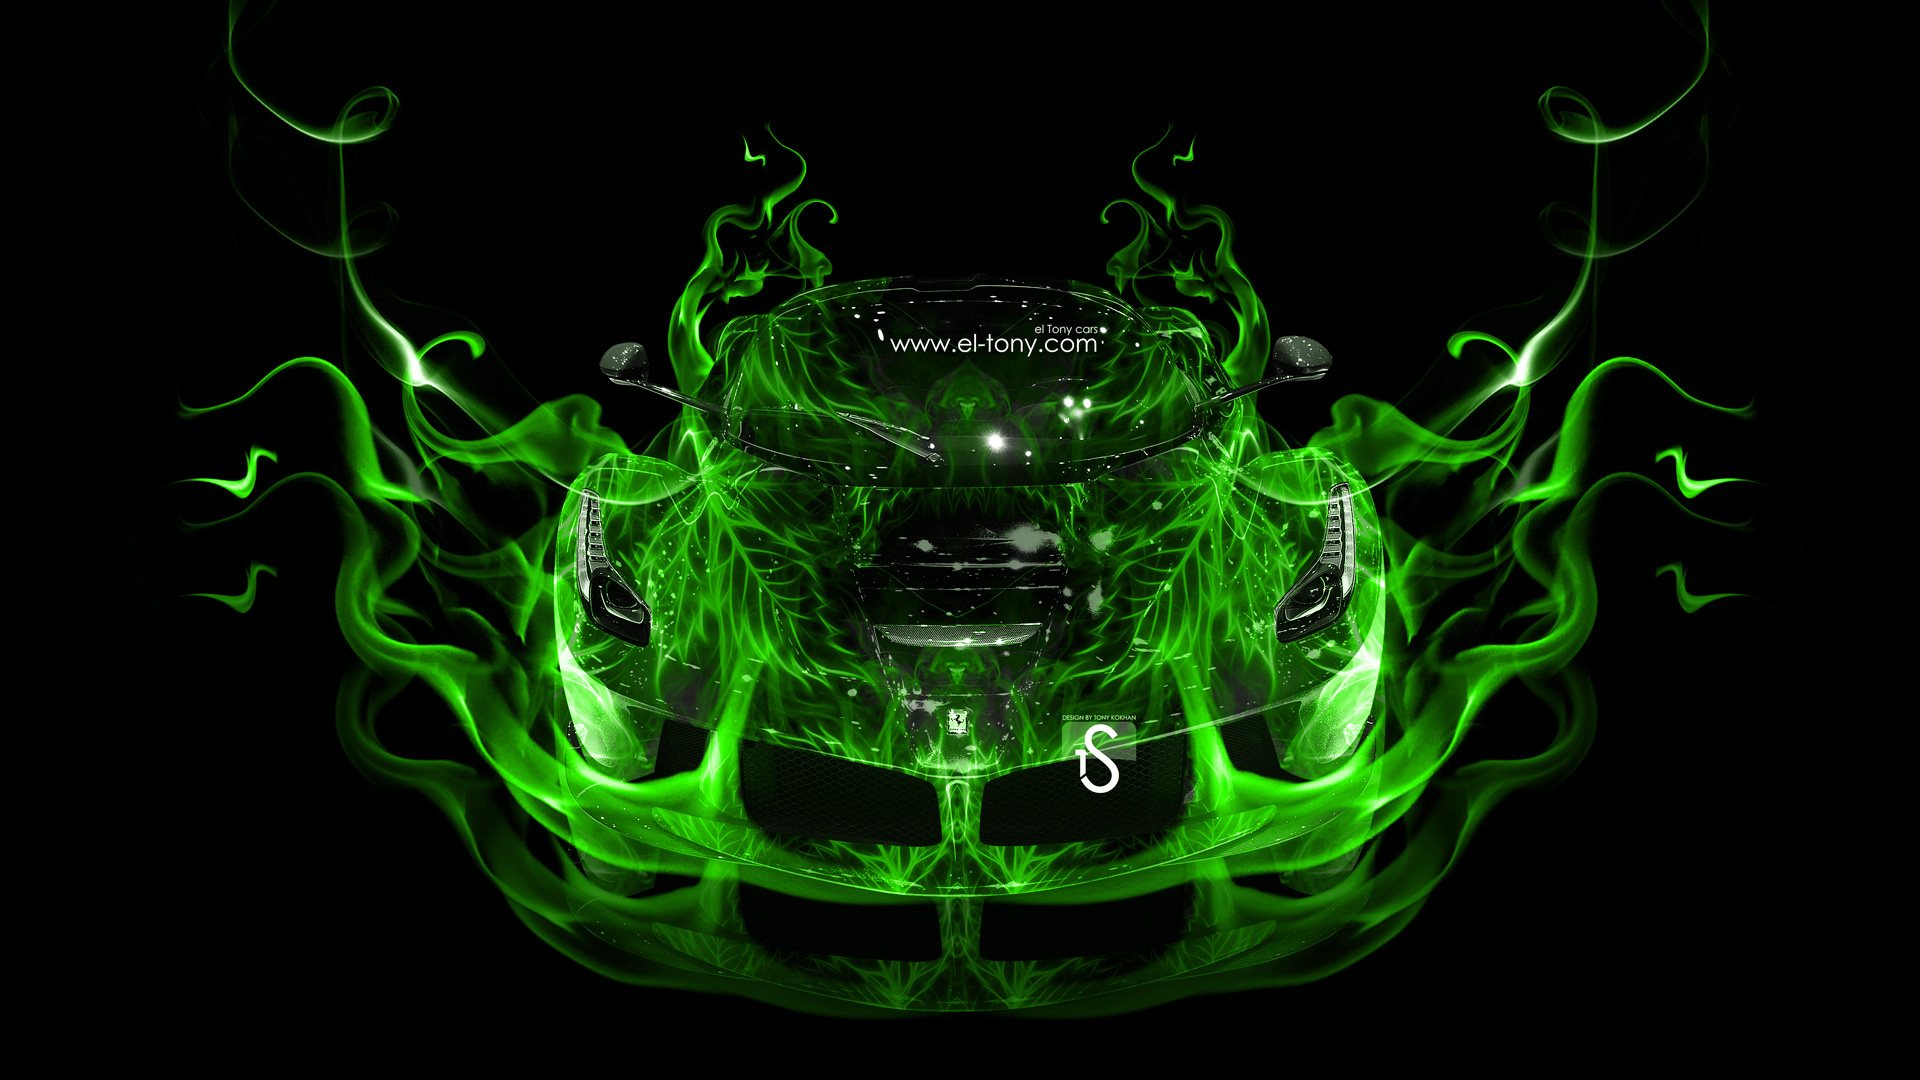 Ferrari Laferrari Green Fire Abstract Car 2013 HD Wallpapers by Tony 1920x1080